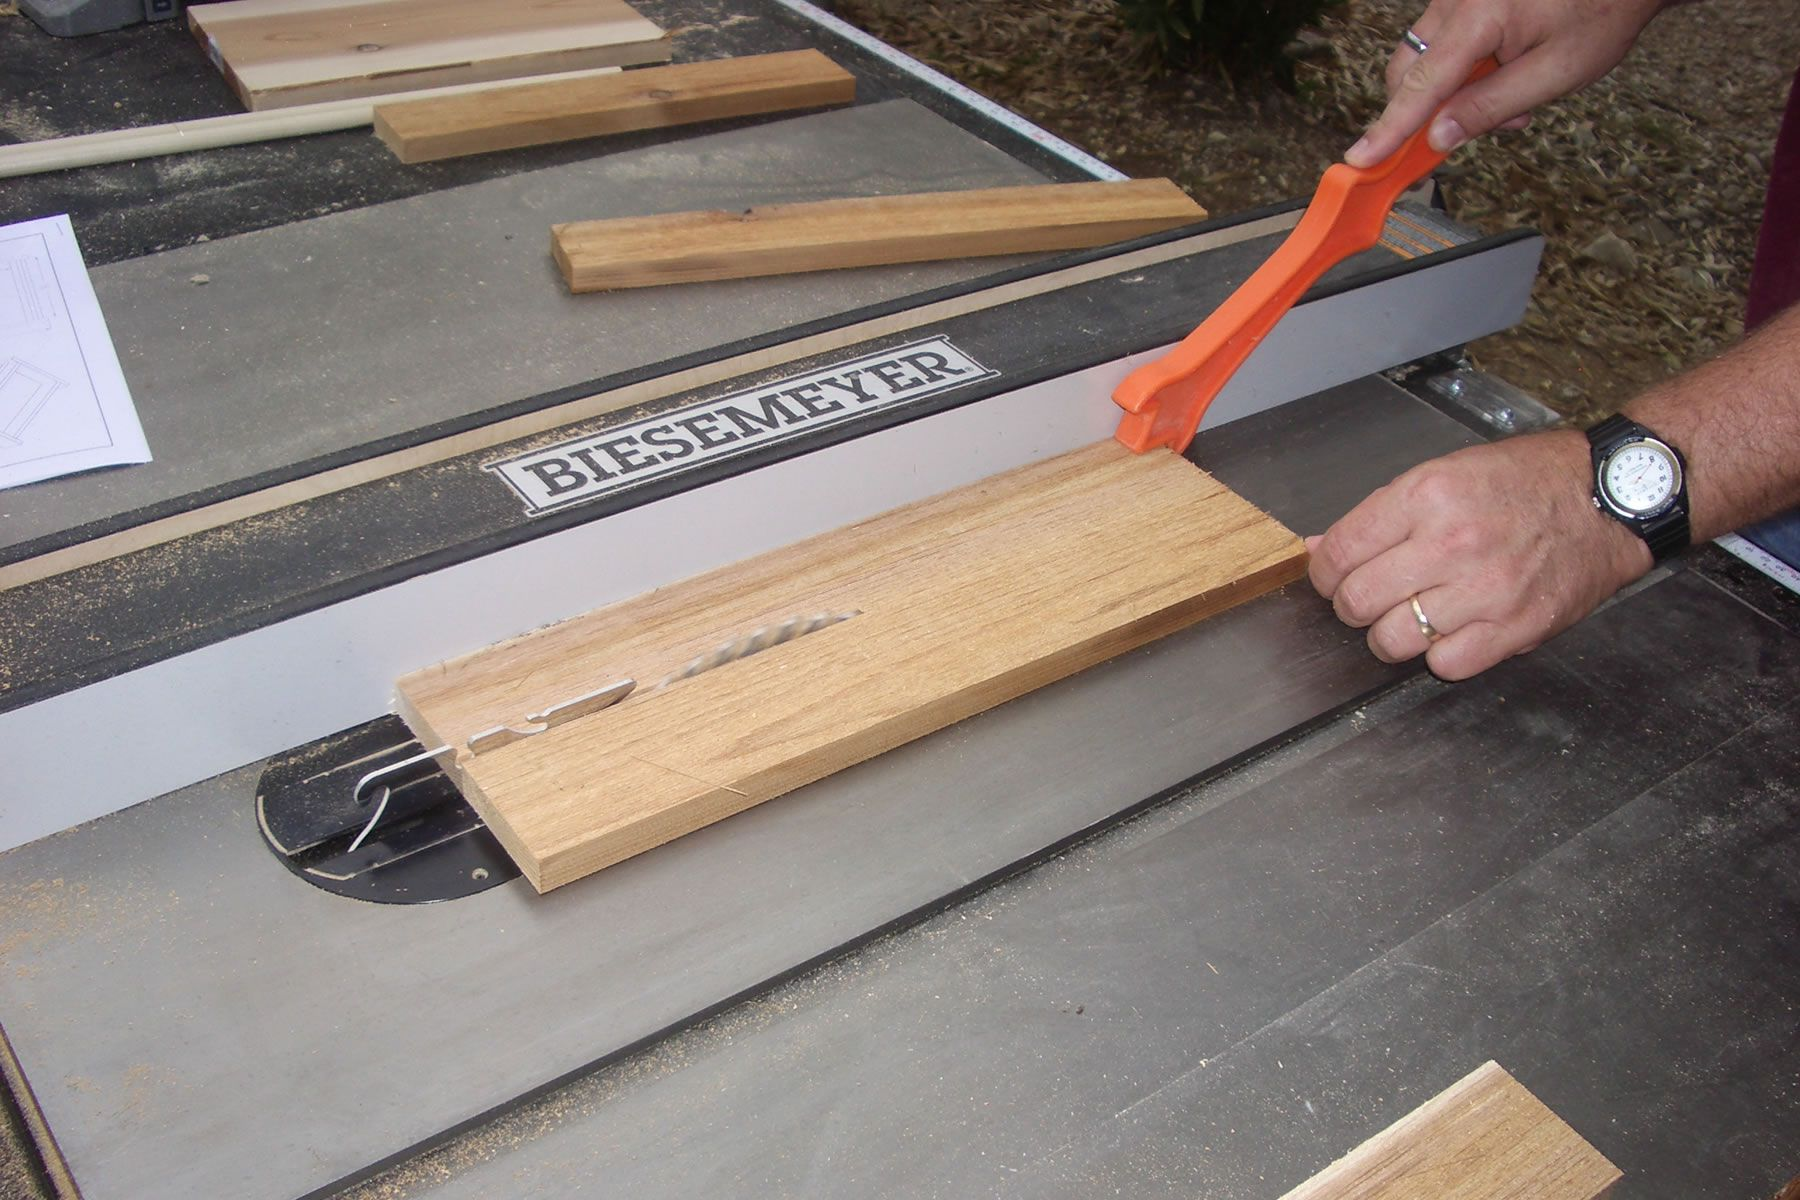 How To Get The Most Out Of Your Table Saw